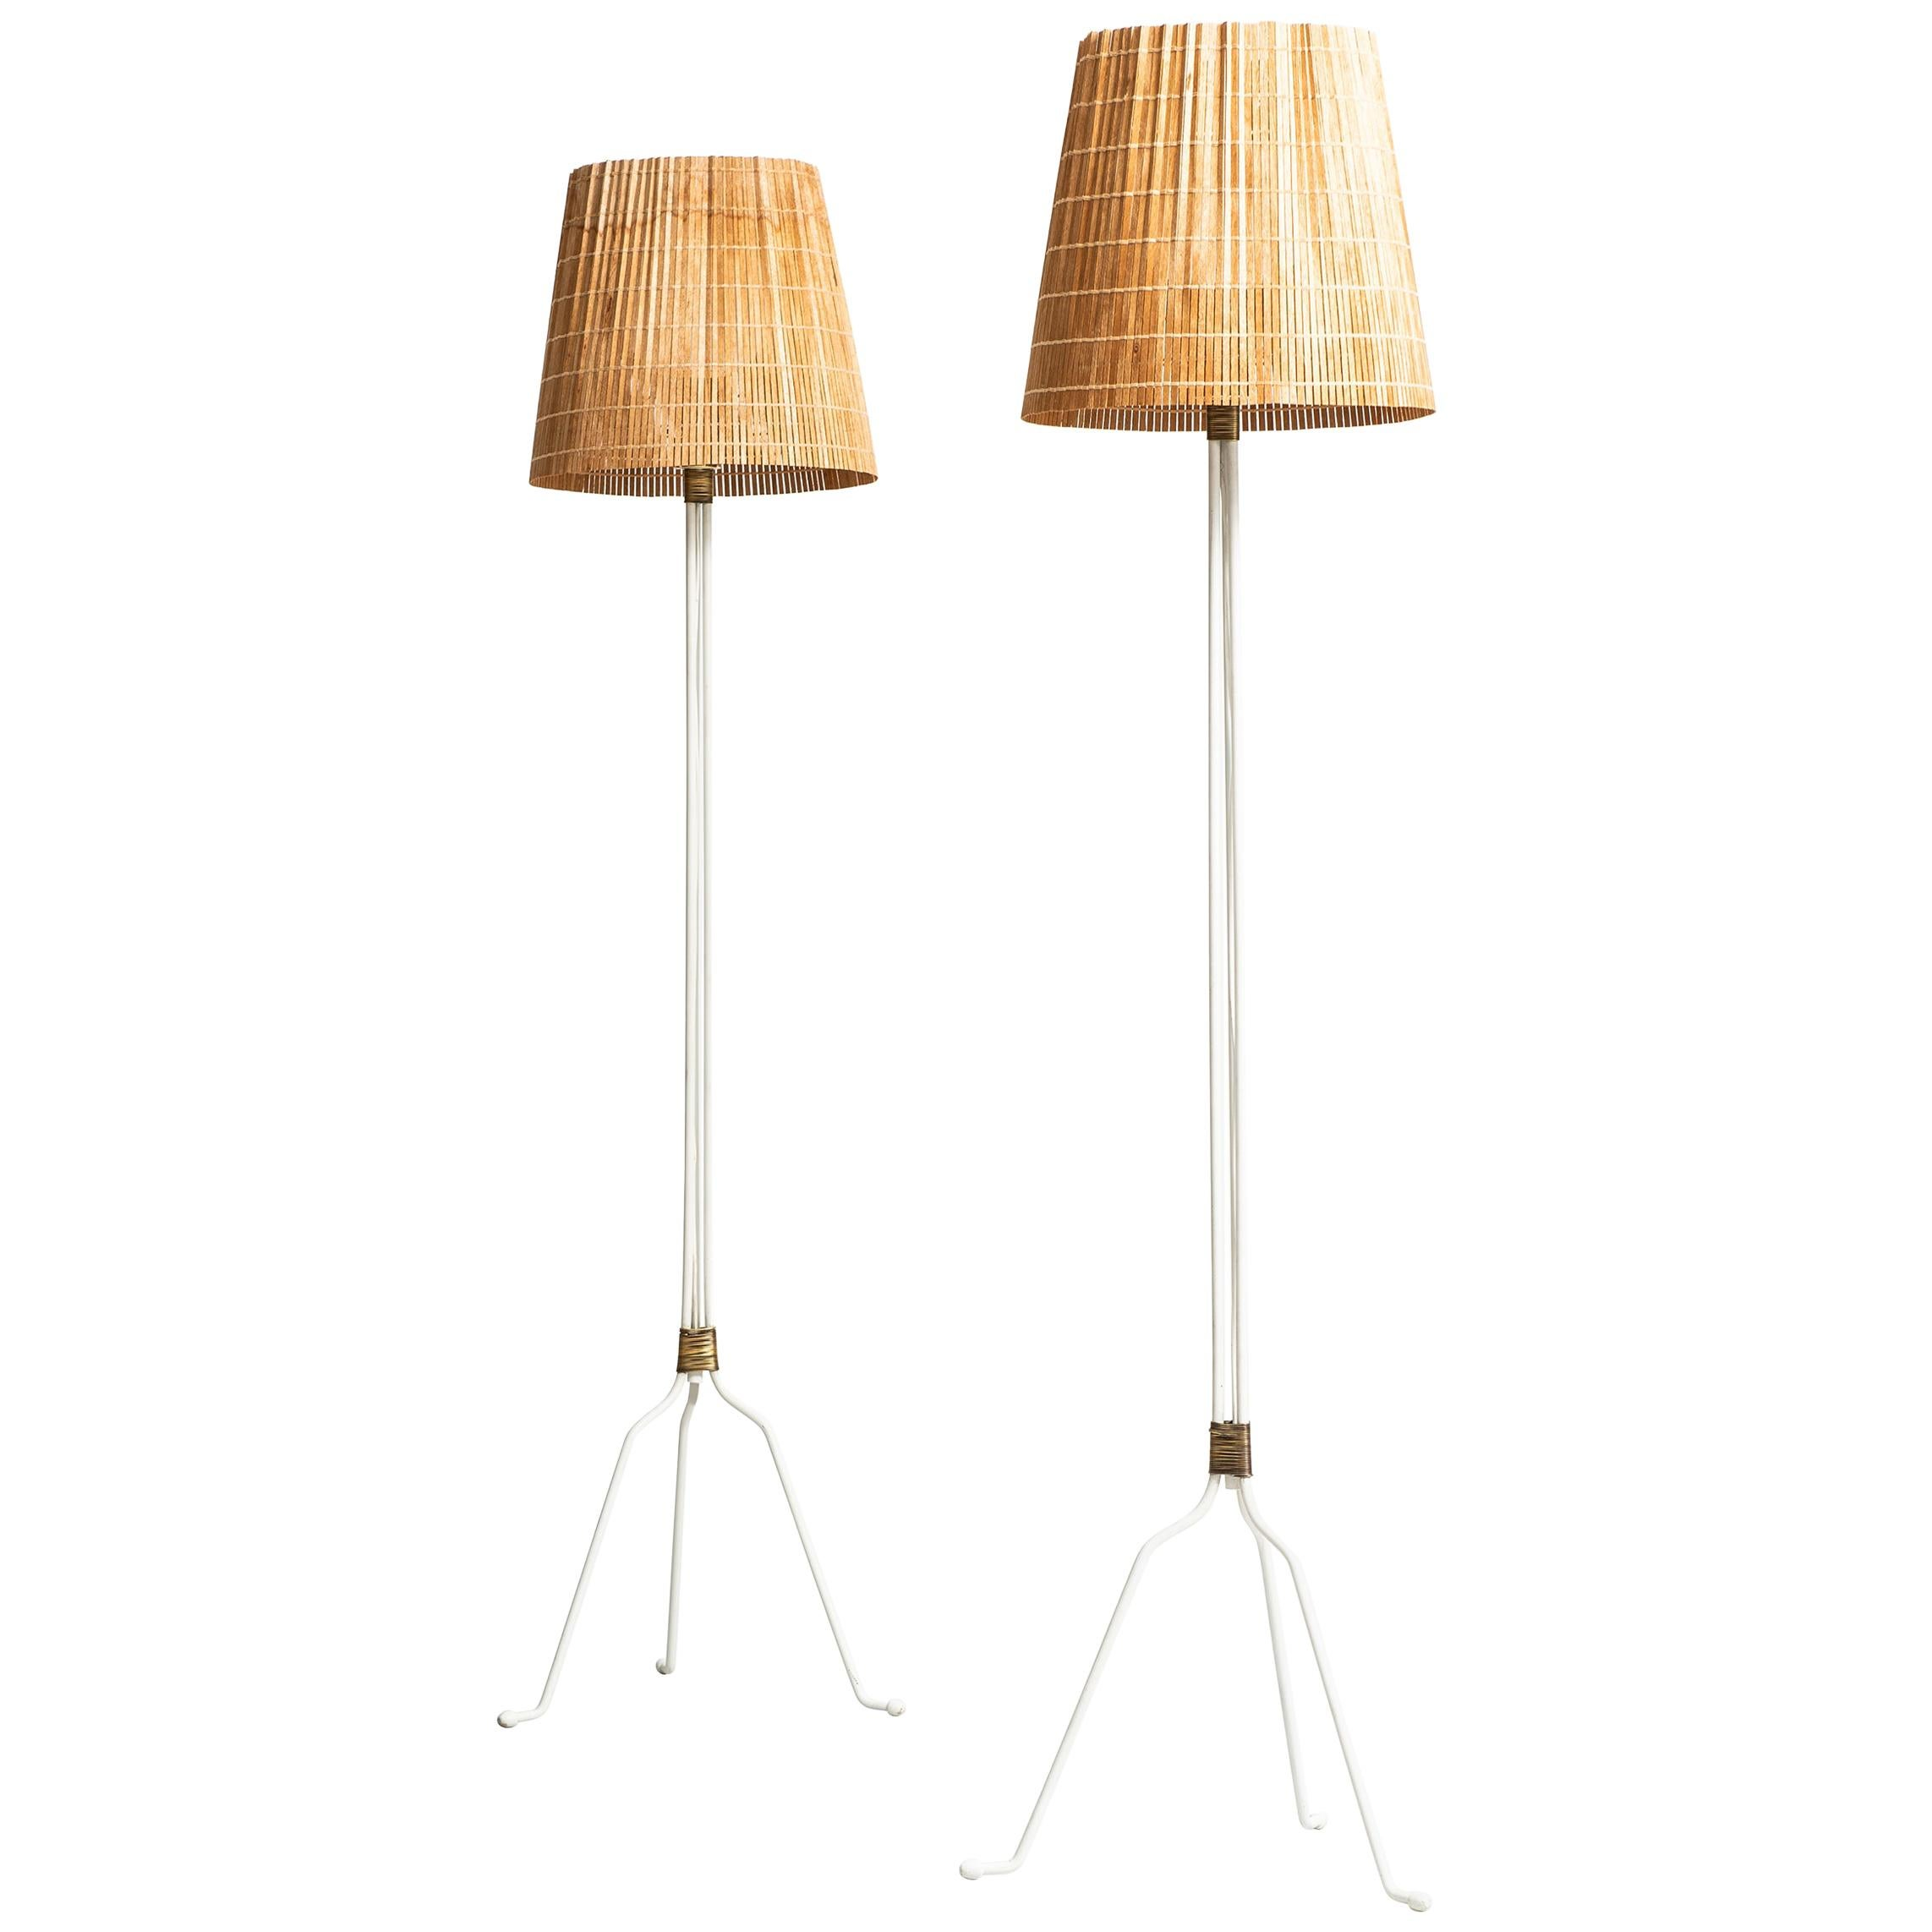 Lisa Johansson-Pape Floor Lamps Model 30-058 by Orno in Finland